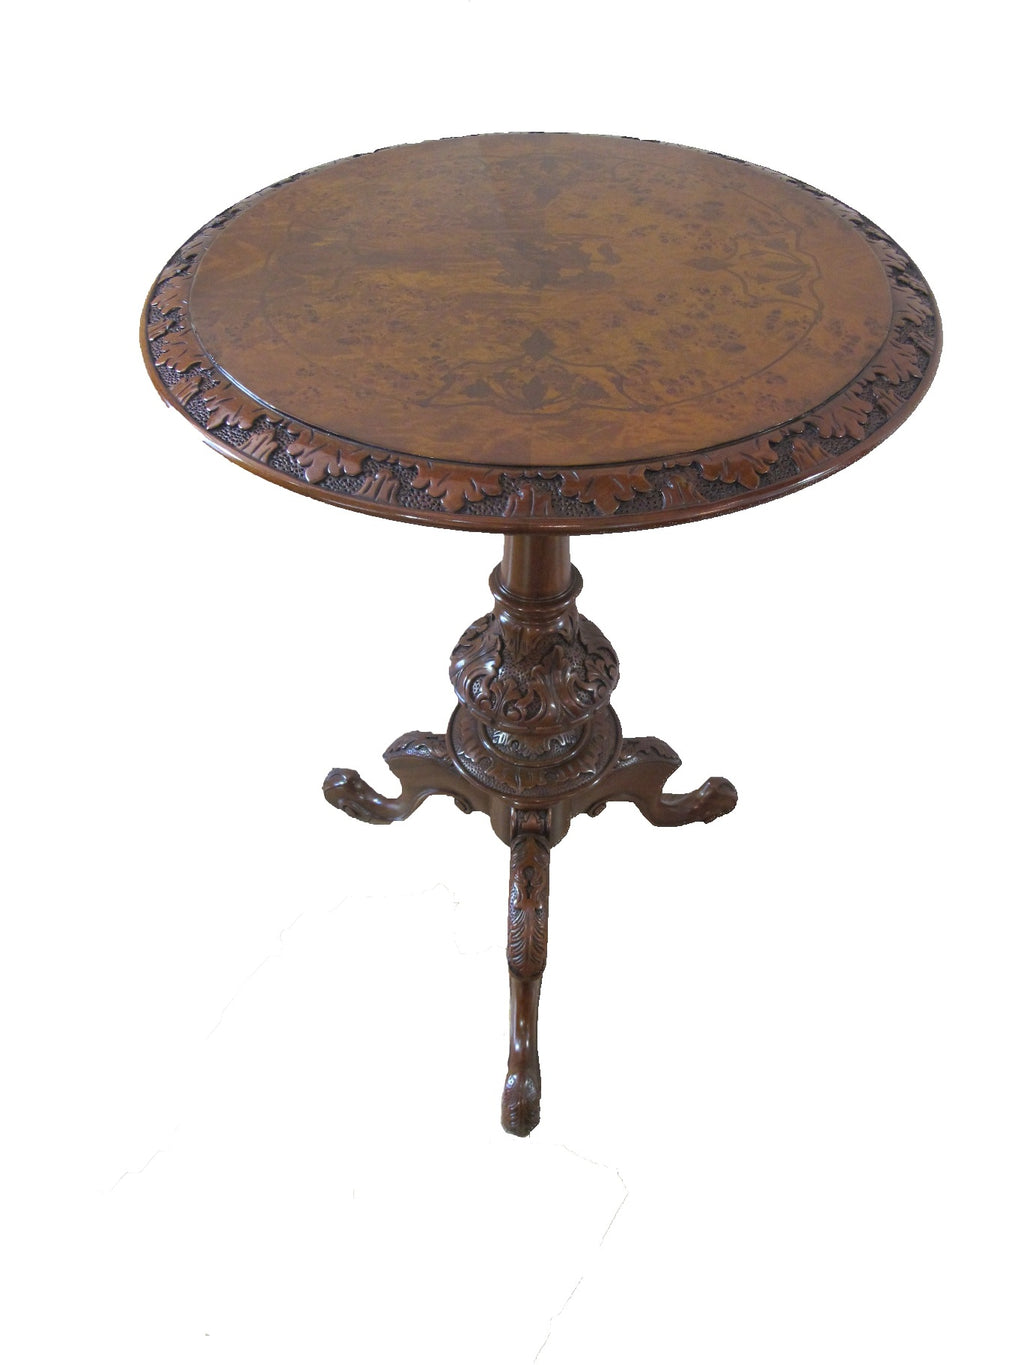 Beautiful  hand made inlaid  round Table features a horse man in a scenic setting, the tripod legs are intricately carved for extra details , made of mahogany & burl wood.